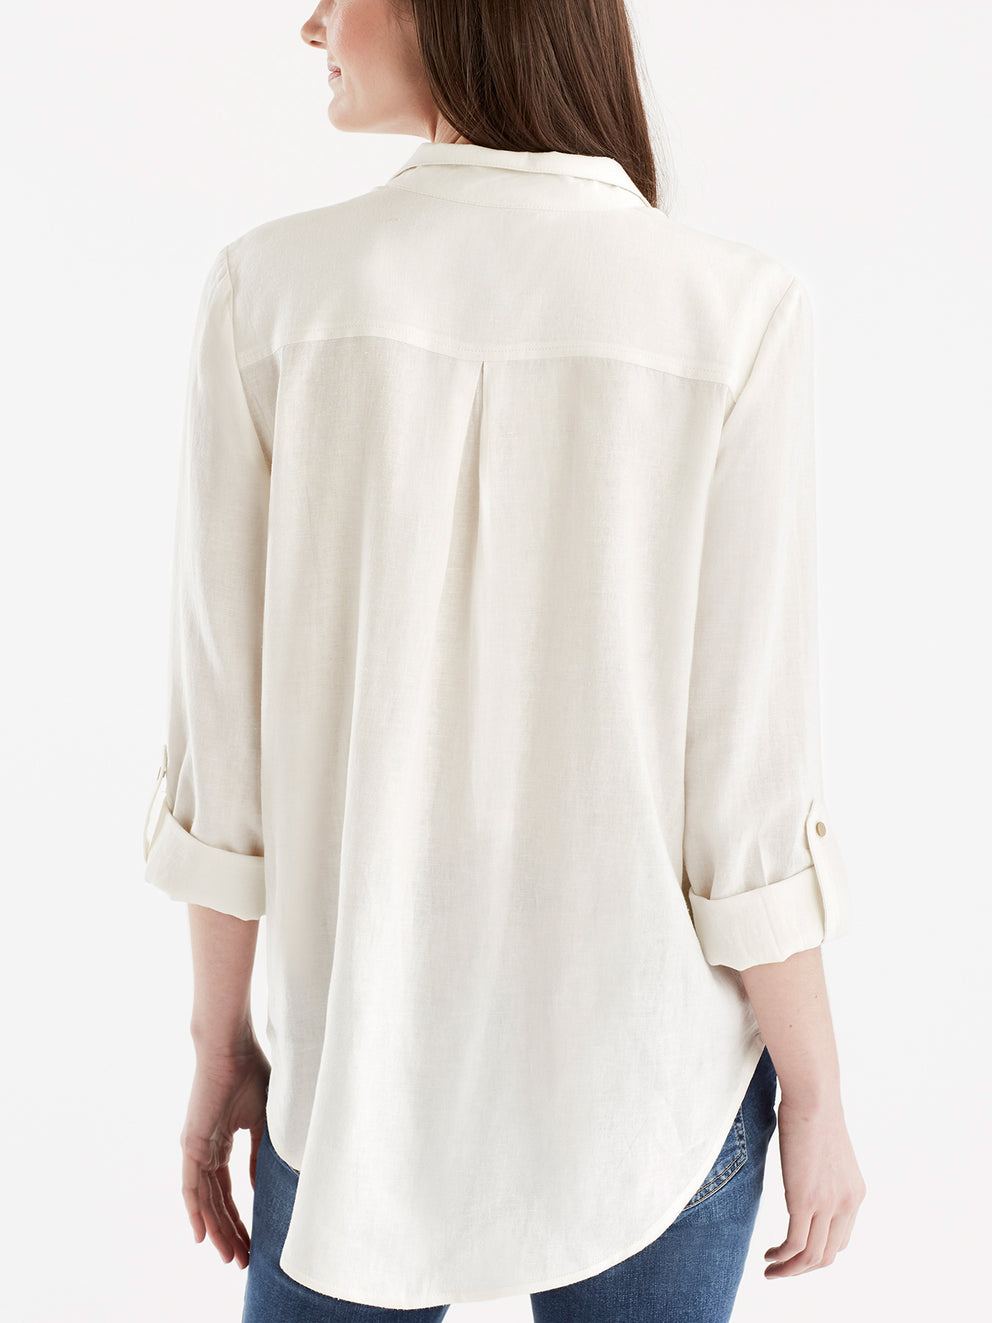 Stand Collar Shirt Color Ivory